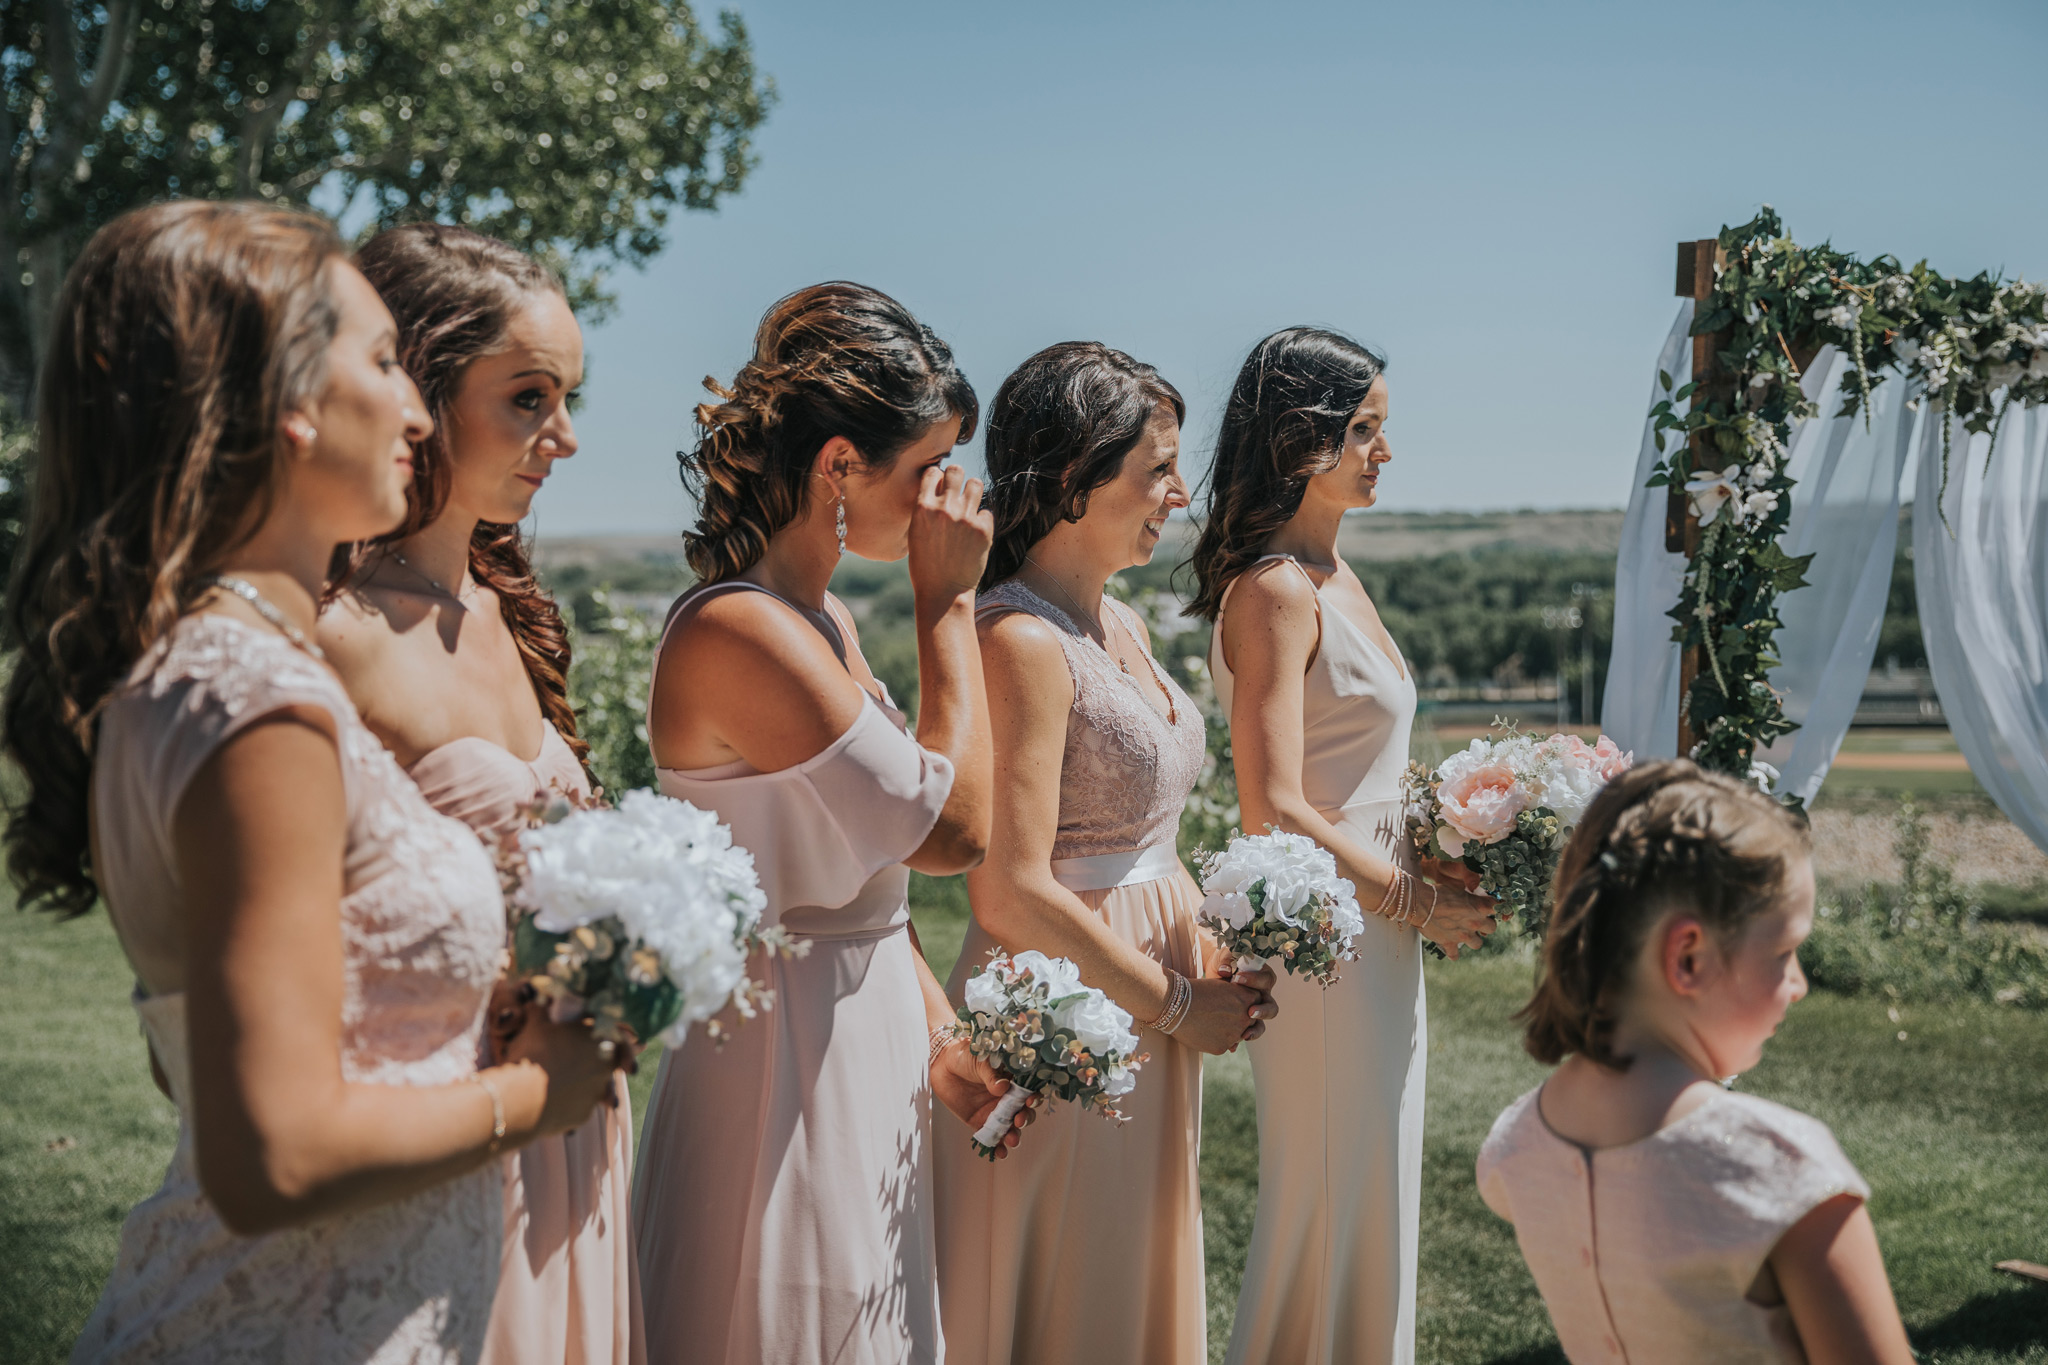 bridesmaids watching the ceremony as one wipes away a tear